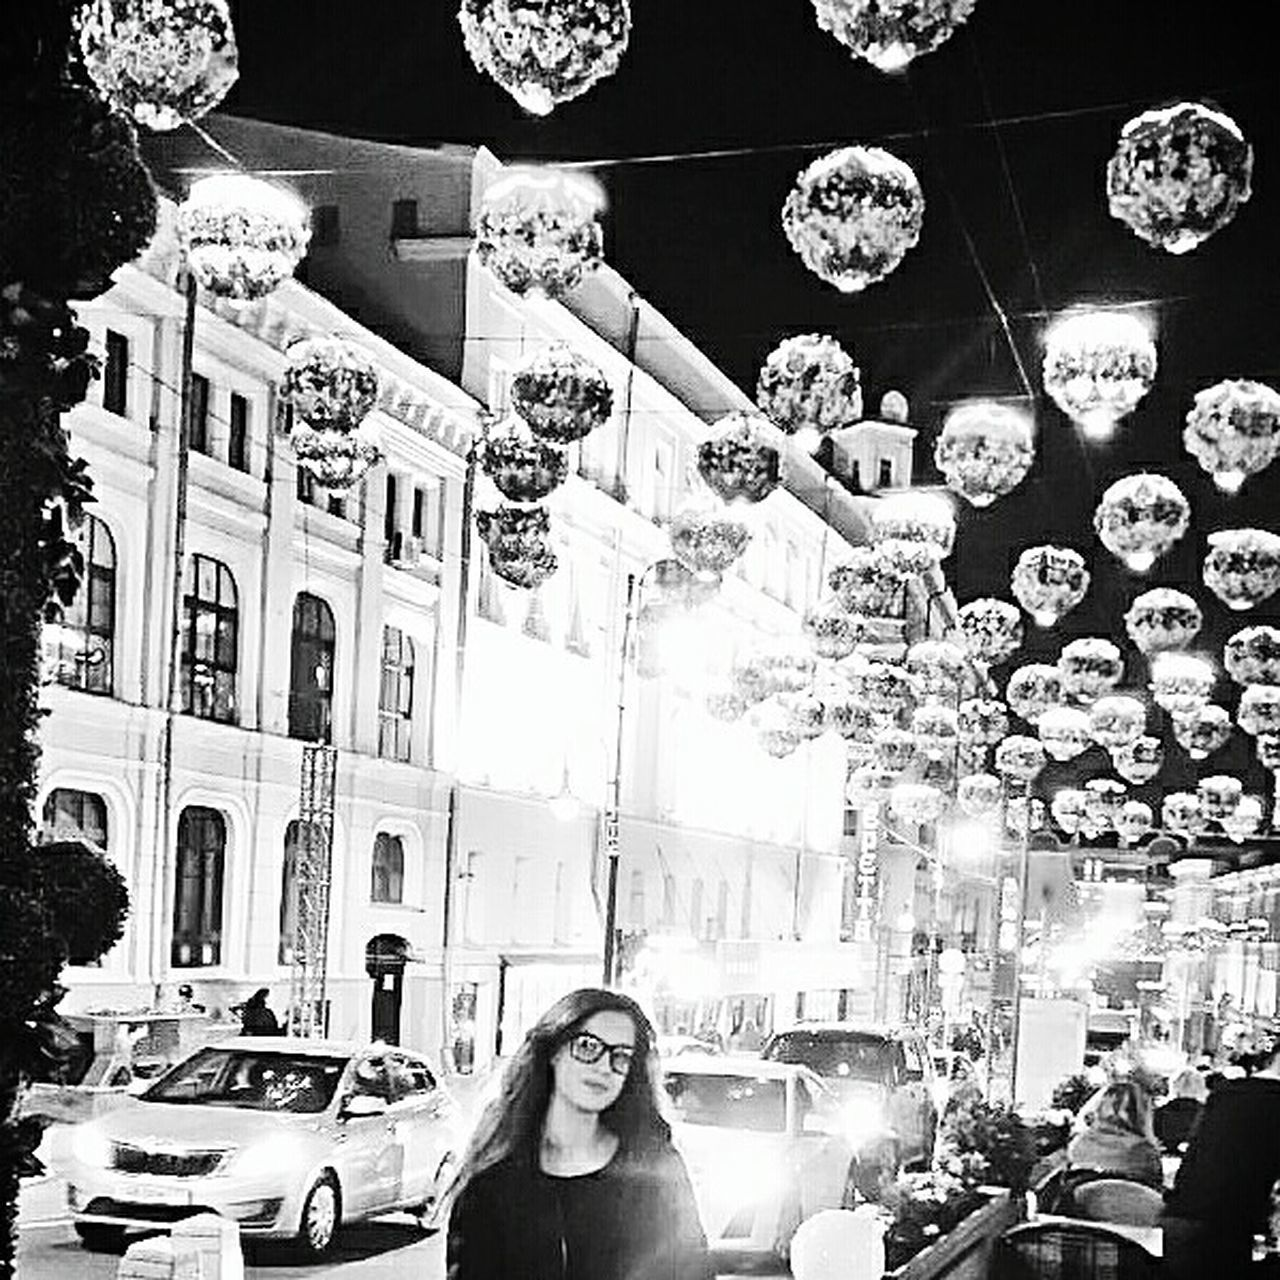 store, car, building exterior, retail, built structure, city, architecture, real people, women, lifestyles, large group of people, outdoors, night, adult, adults only, people, young adult